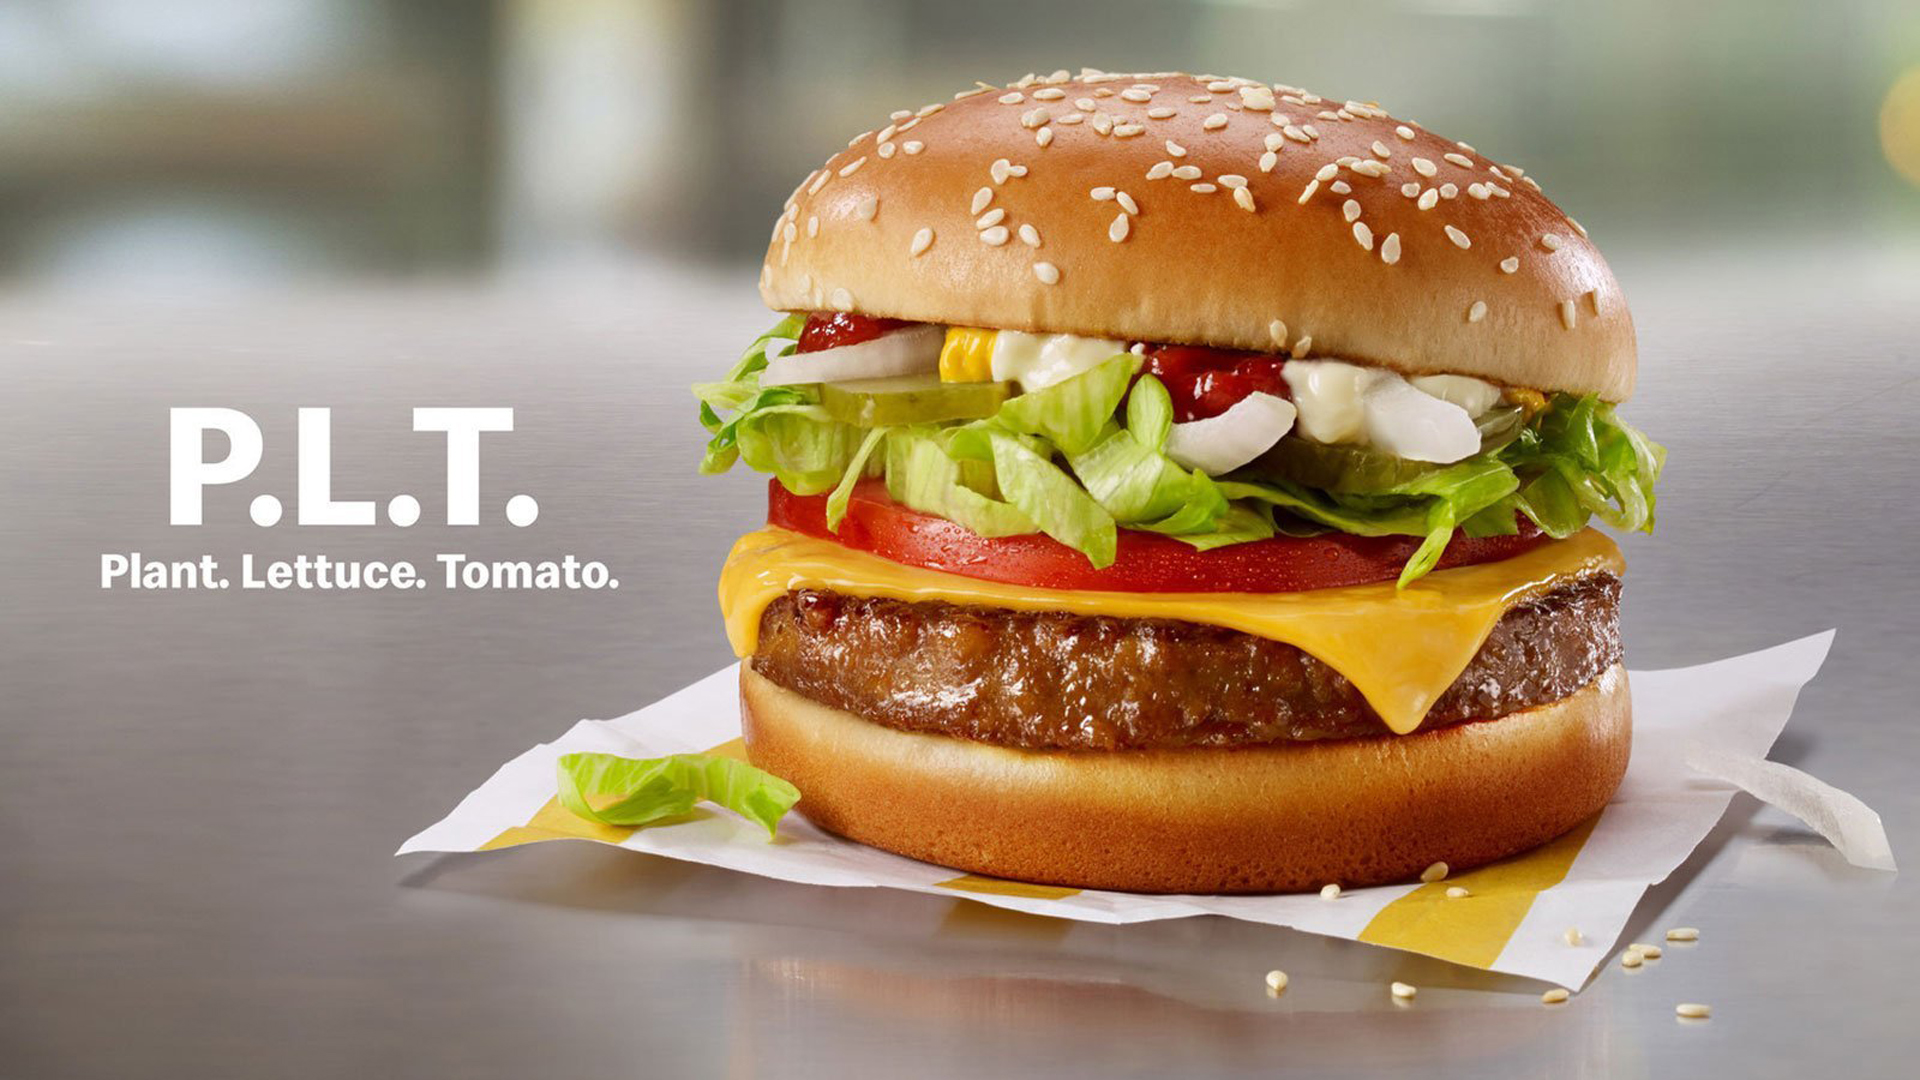 McDonald's will begin testing a Beyond Meat burger, giving the plant-based meat craze a major endorsement. (Credit: McDonald's Corp.)